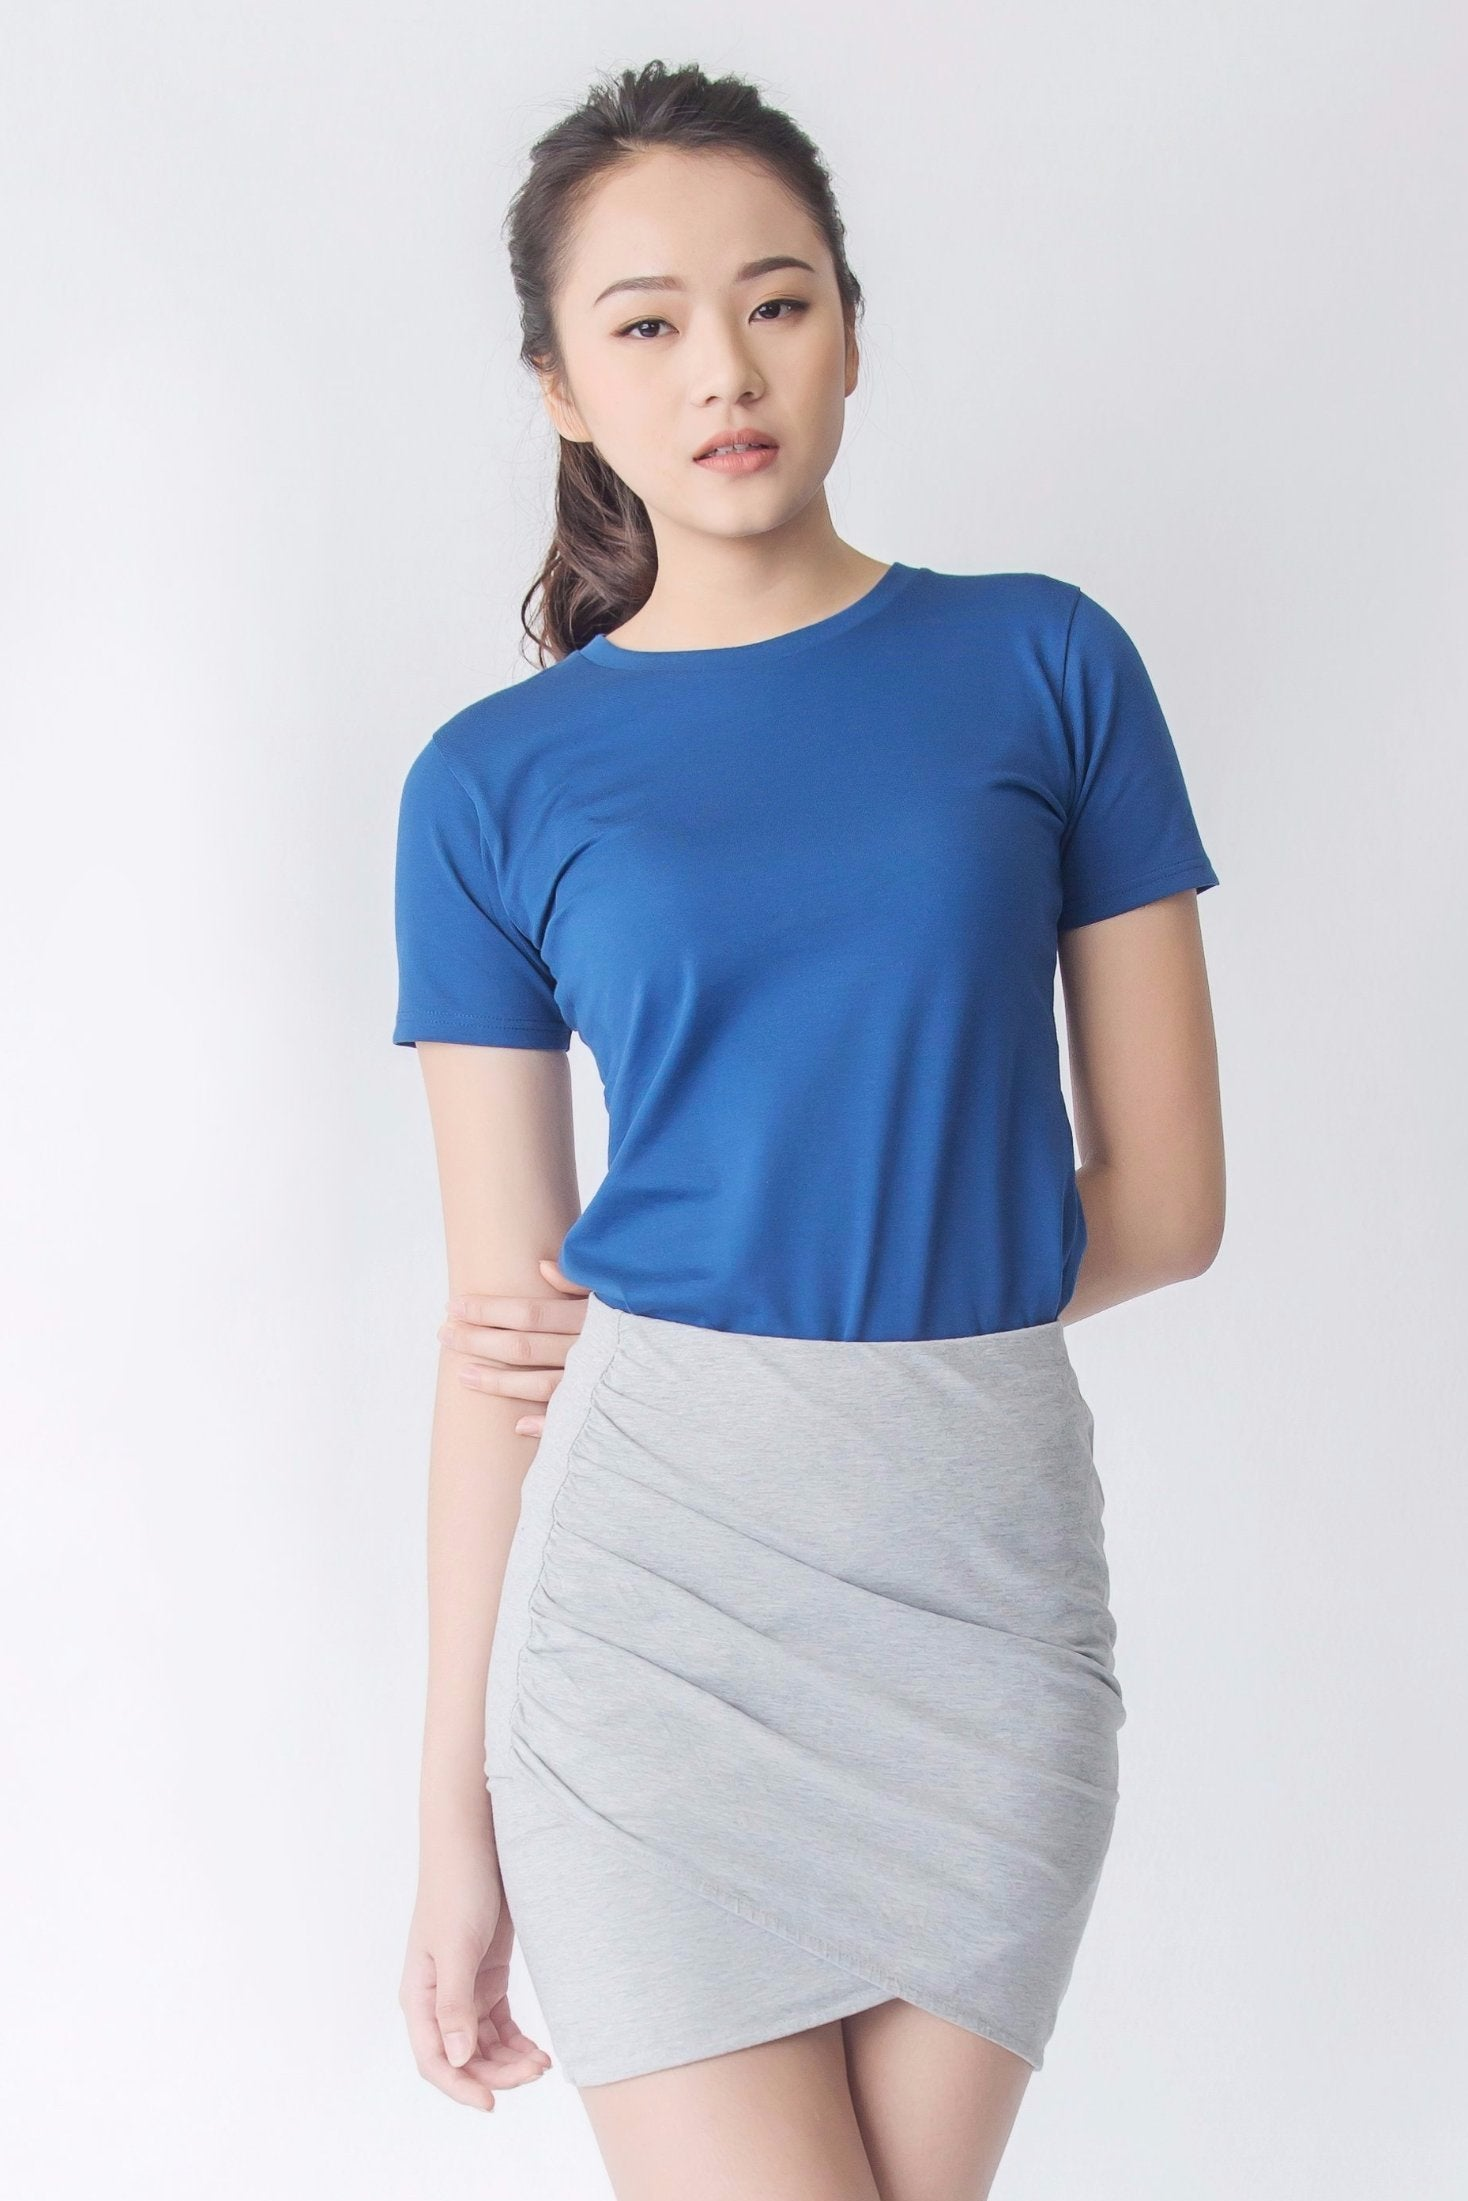 b547a801aa Supima Cotton Crew Neck T-shirt | Navy Blue | For Women - Buttonwell